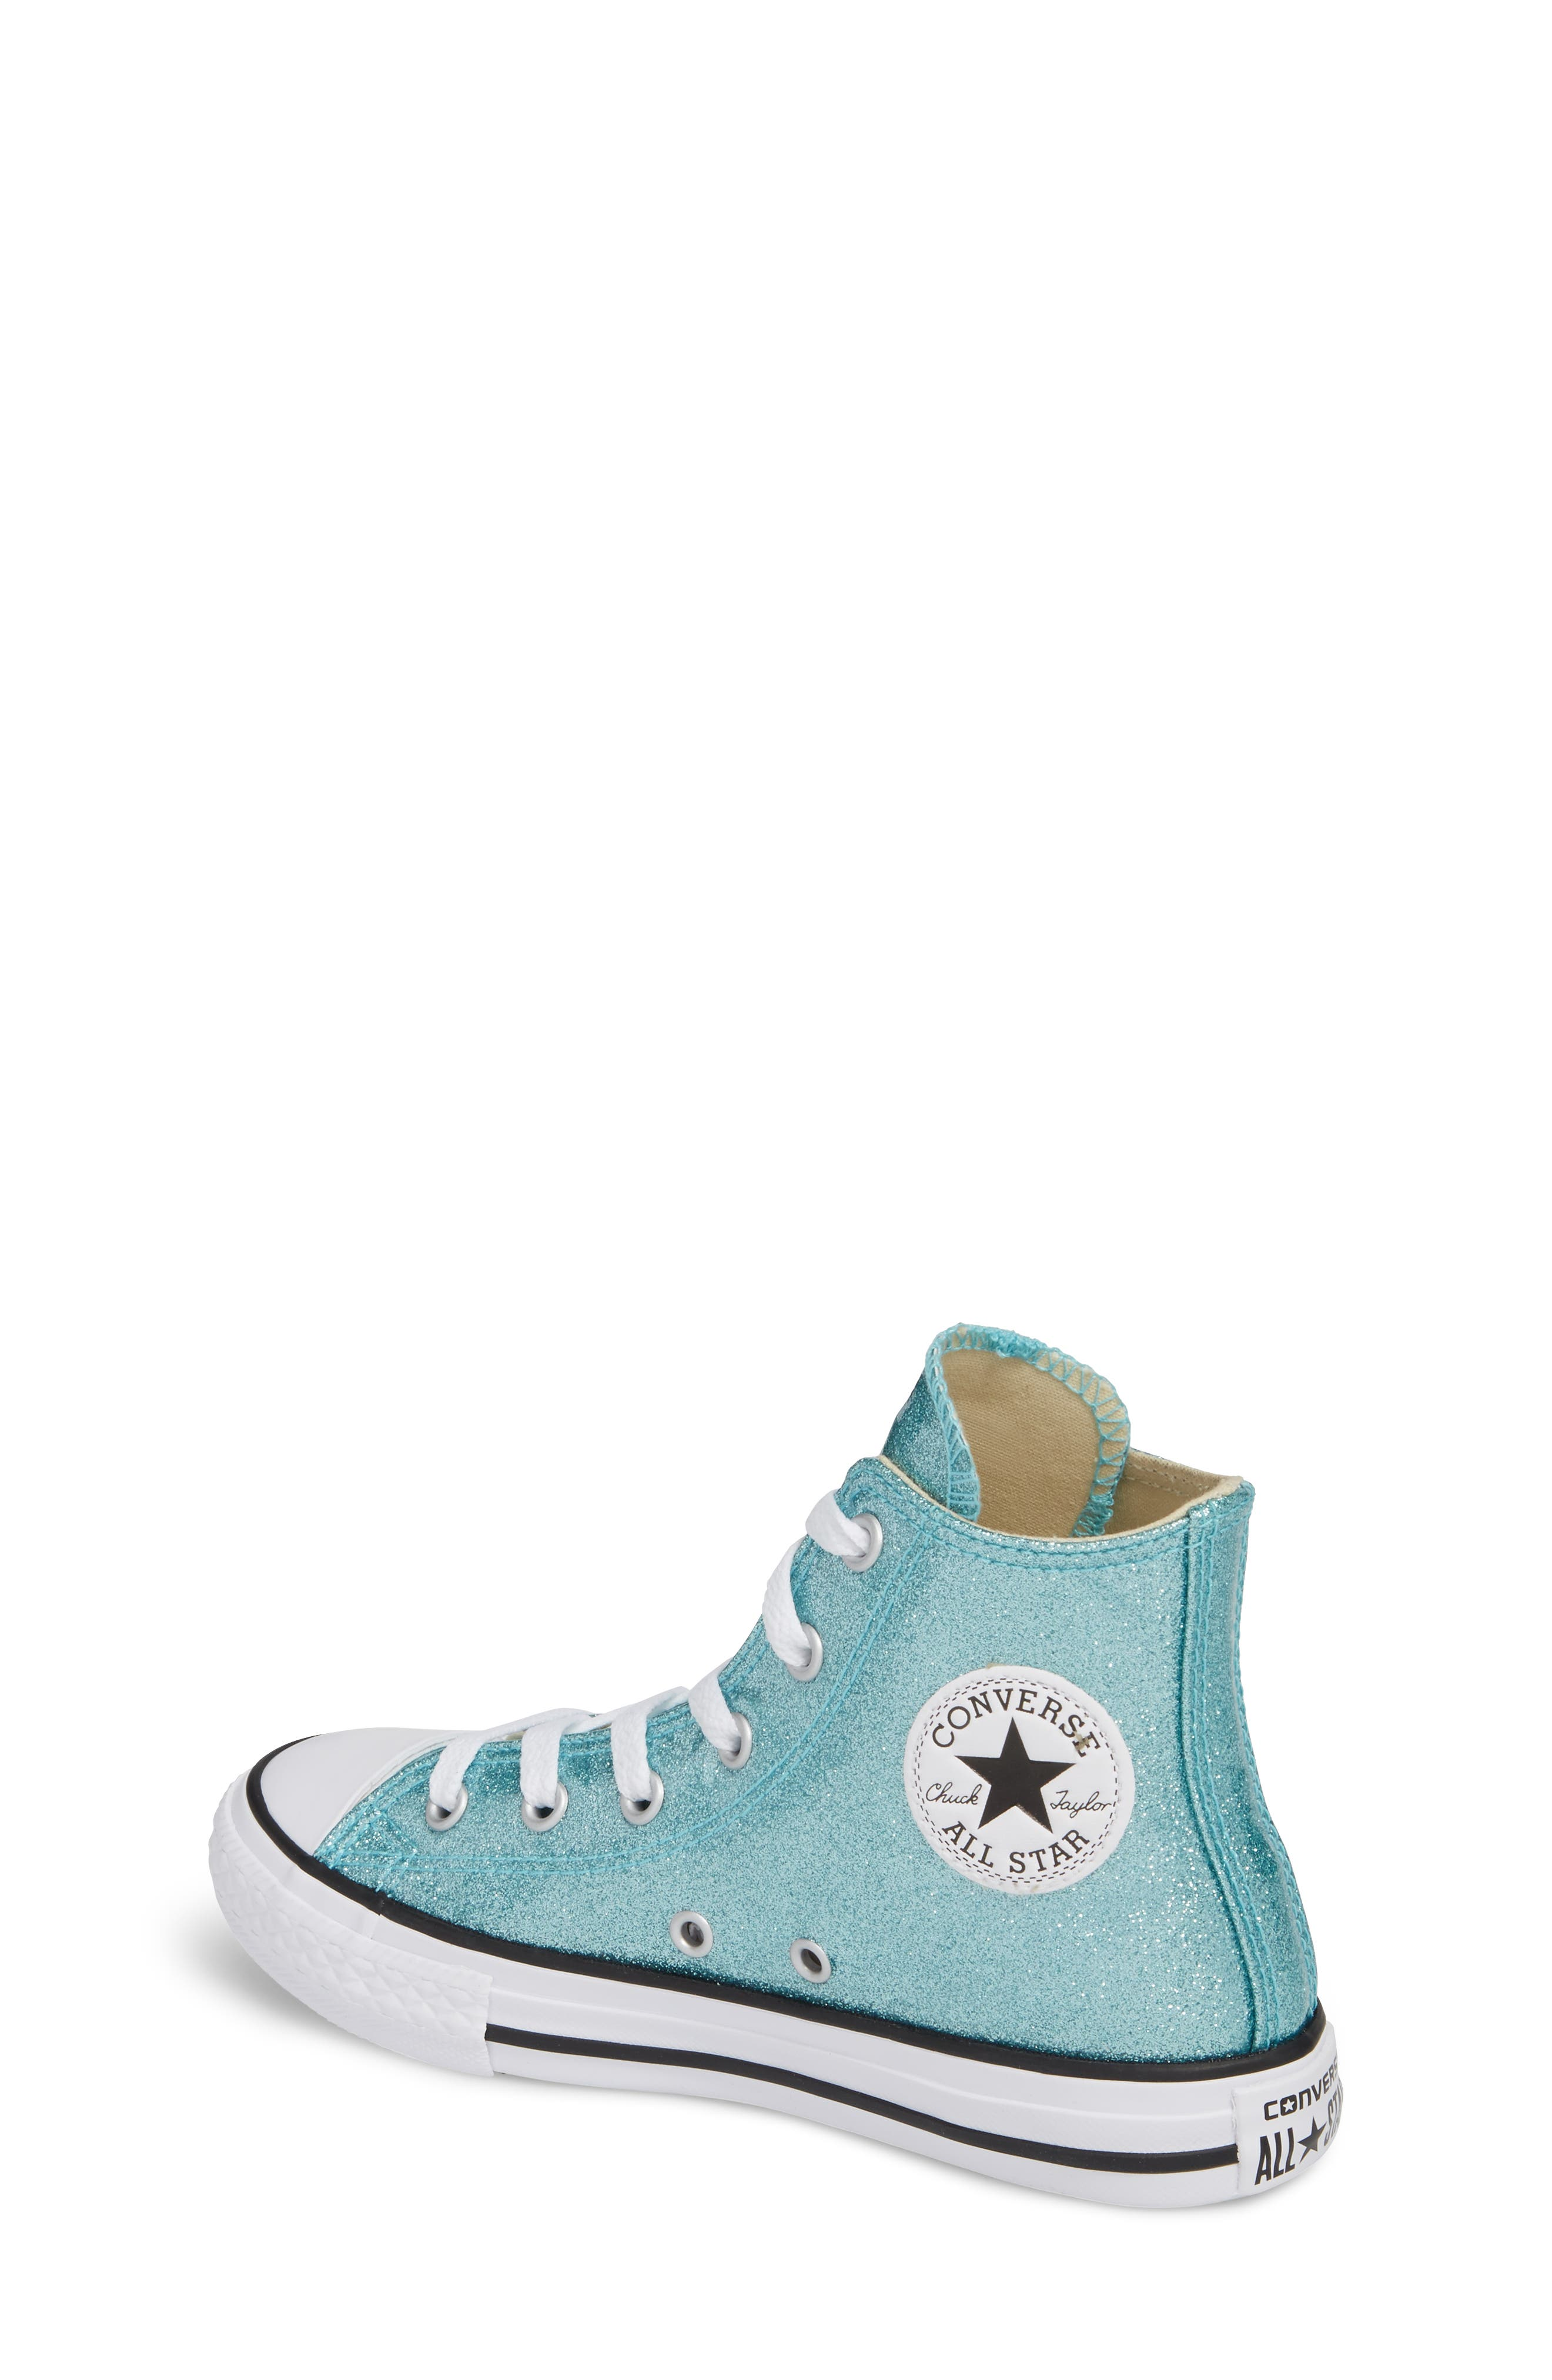 All Star<sup>®</sup> Glitter High Top Sneaker,                             Alternate thumbnail 2, color,                             400